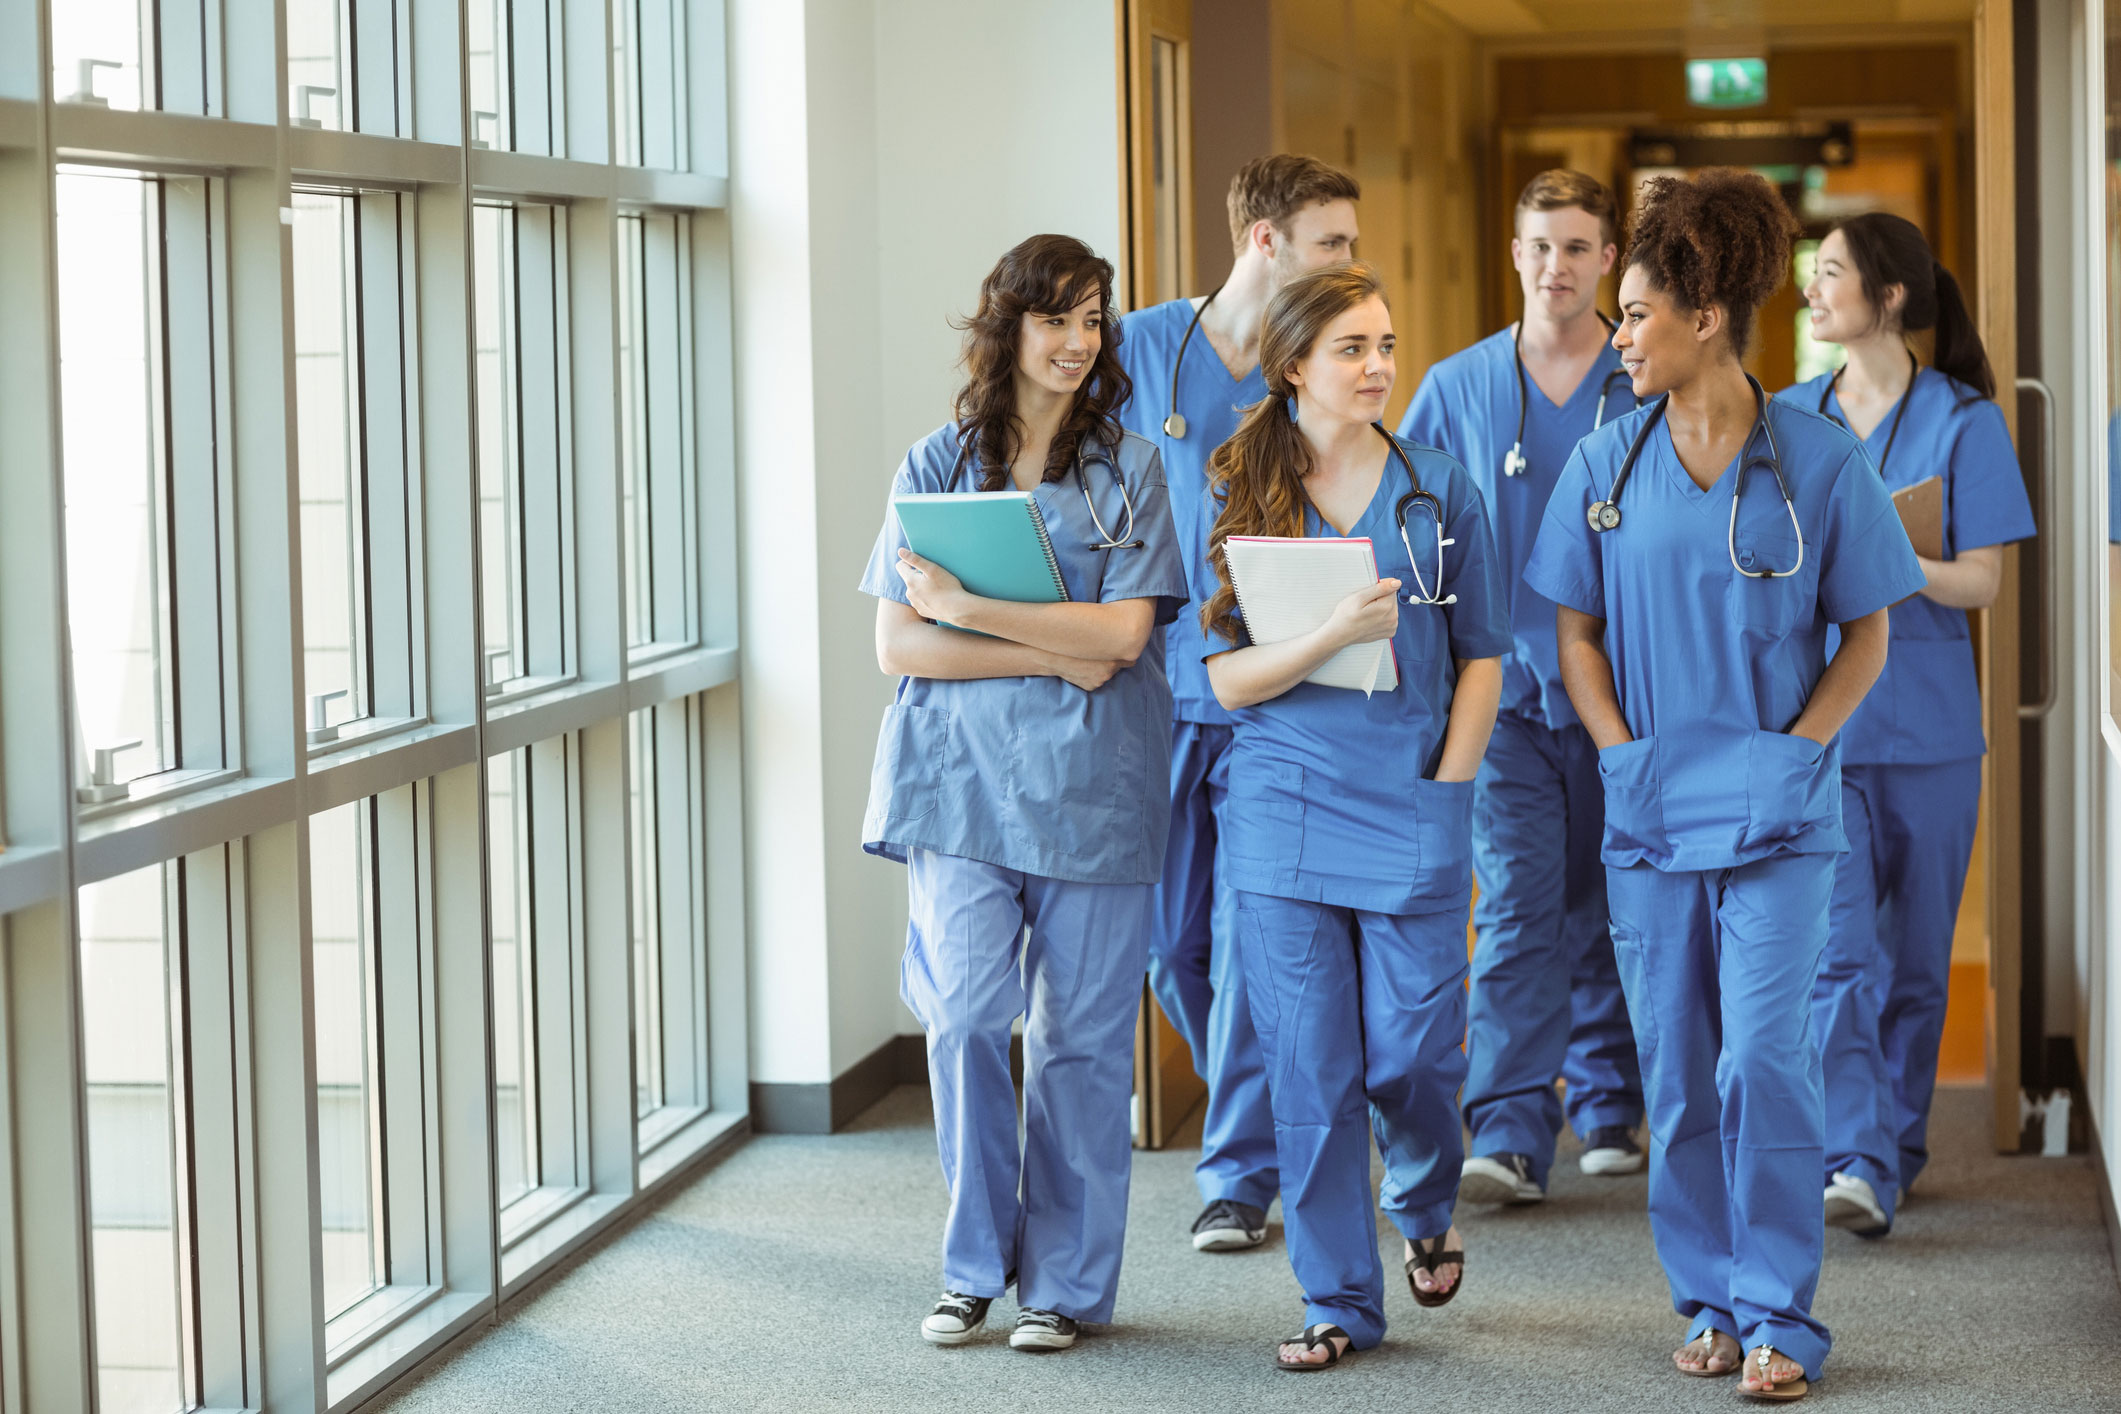 Student training to become med assistants